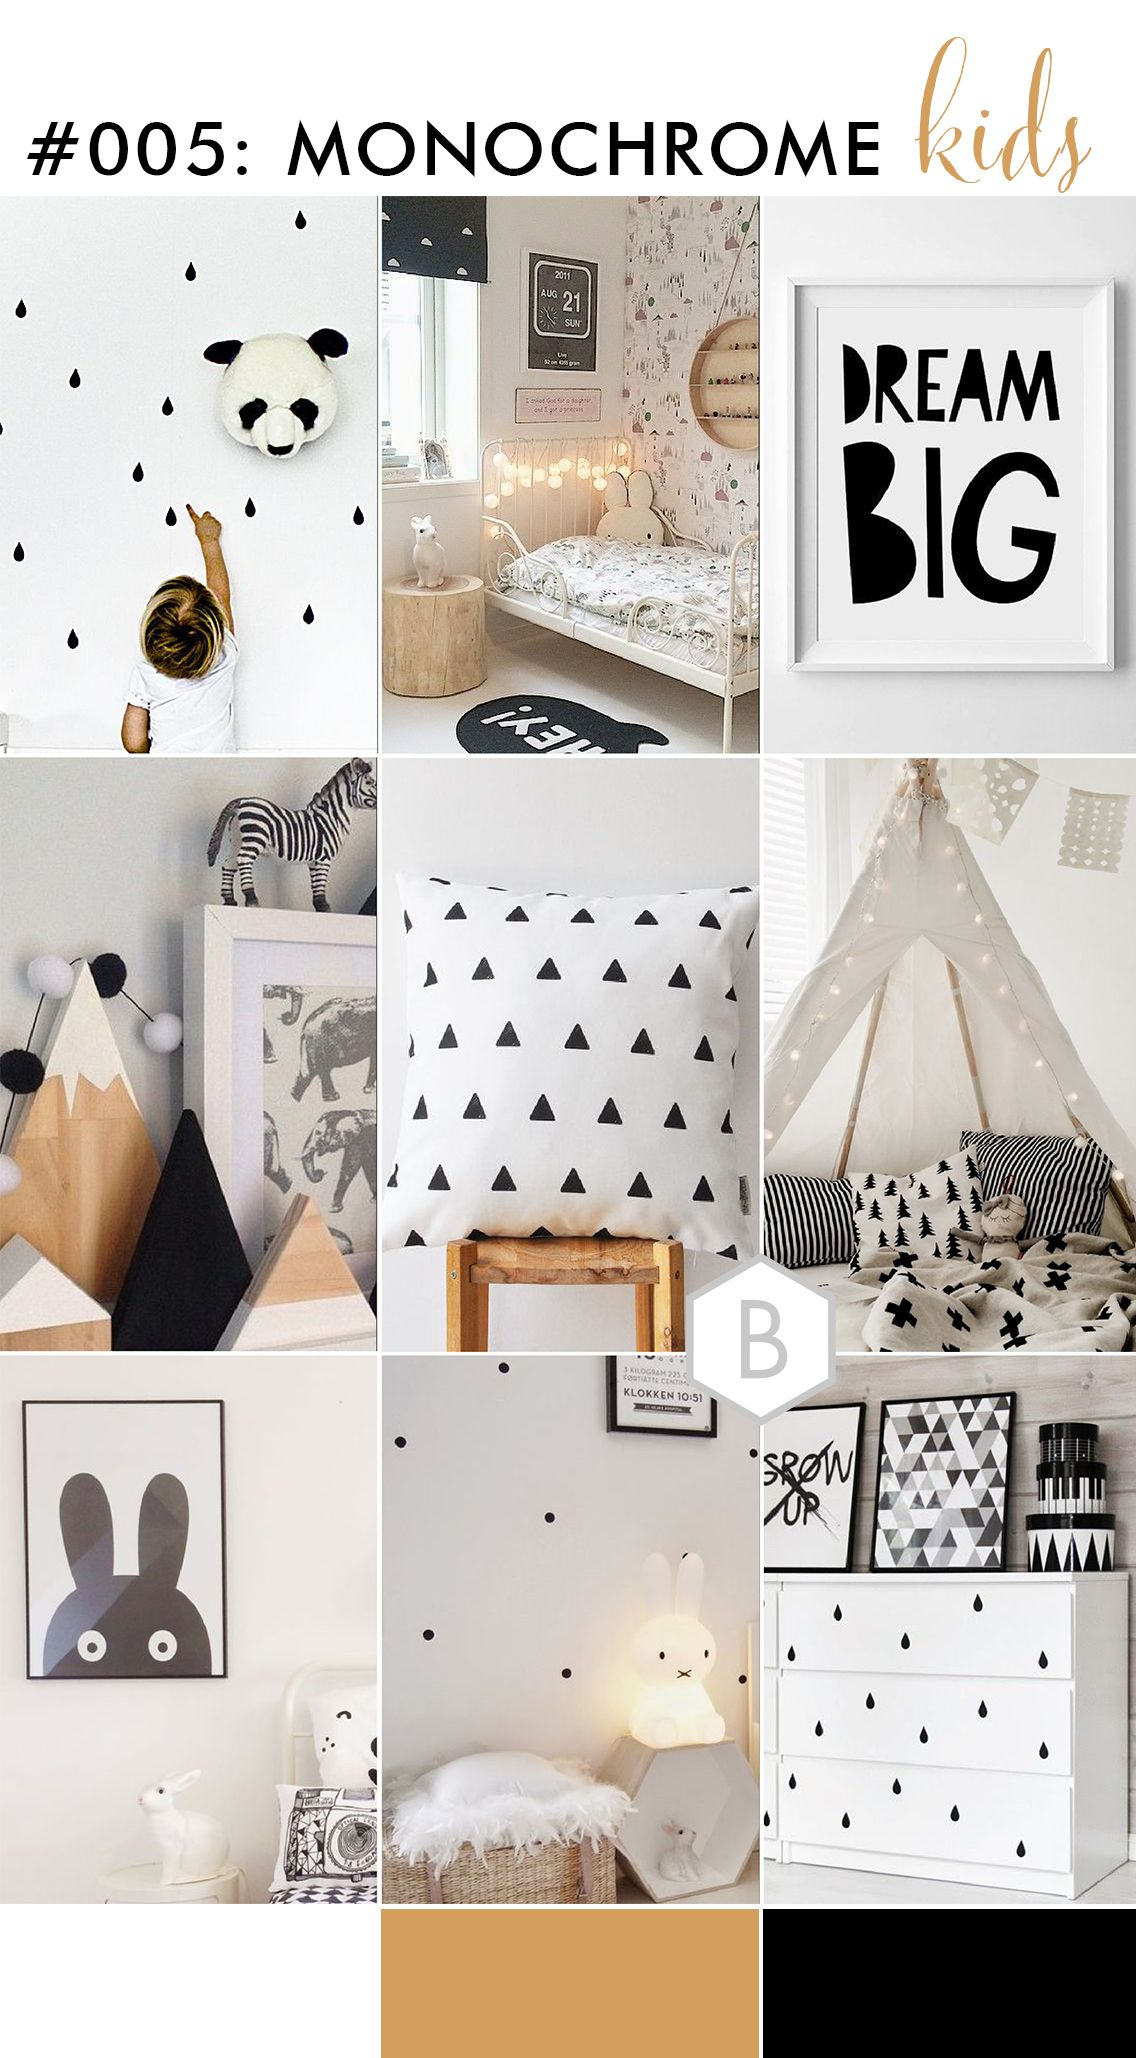 Monochrome Kids Room Decor Inspiration Monochrome Room decor